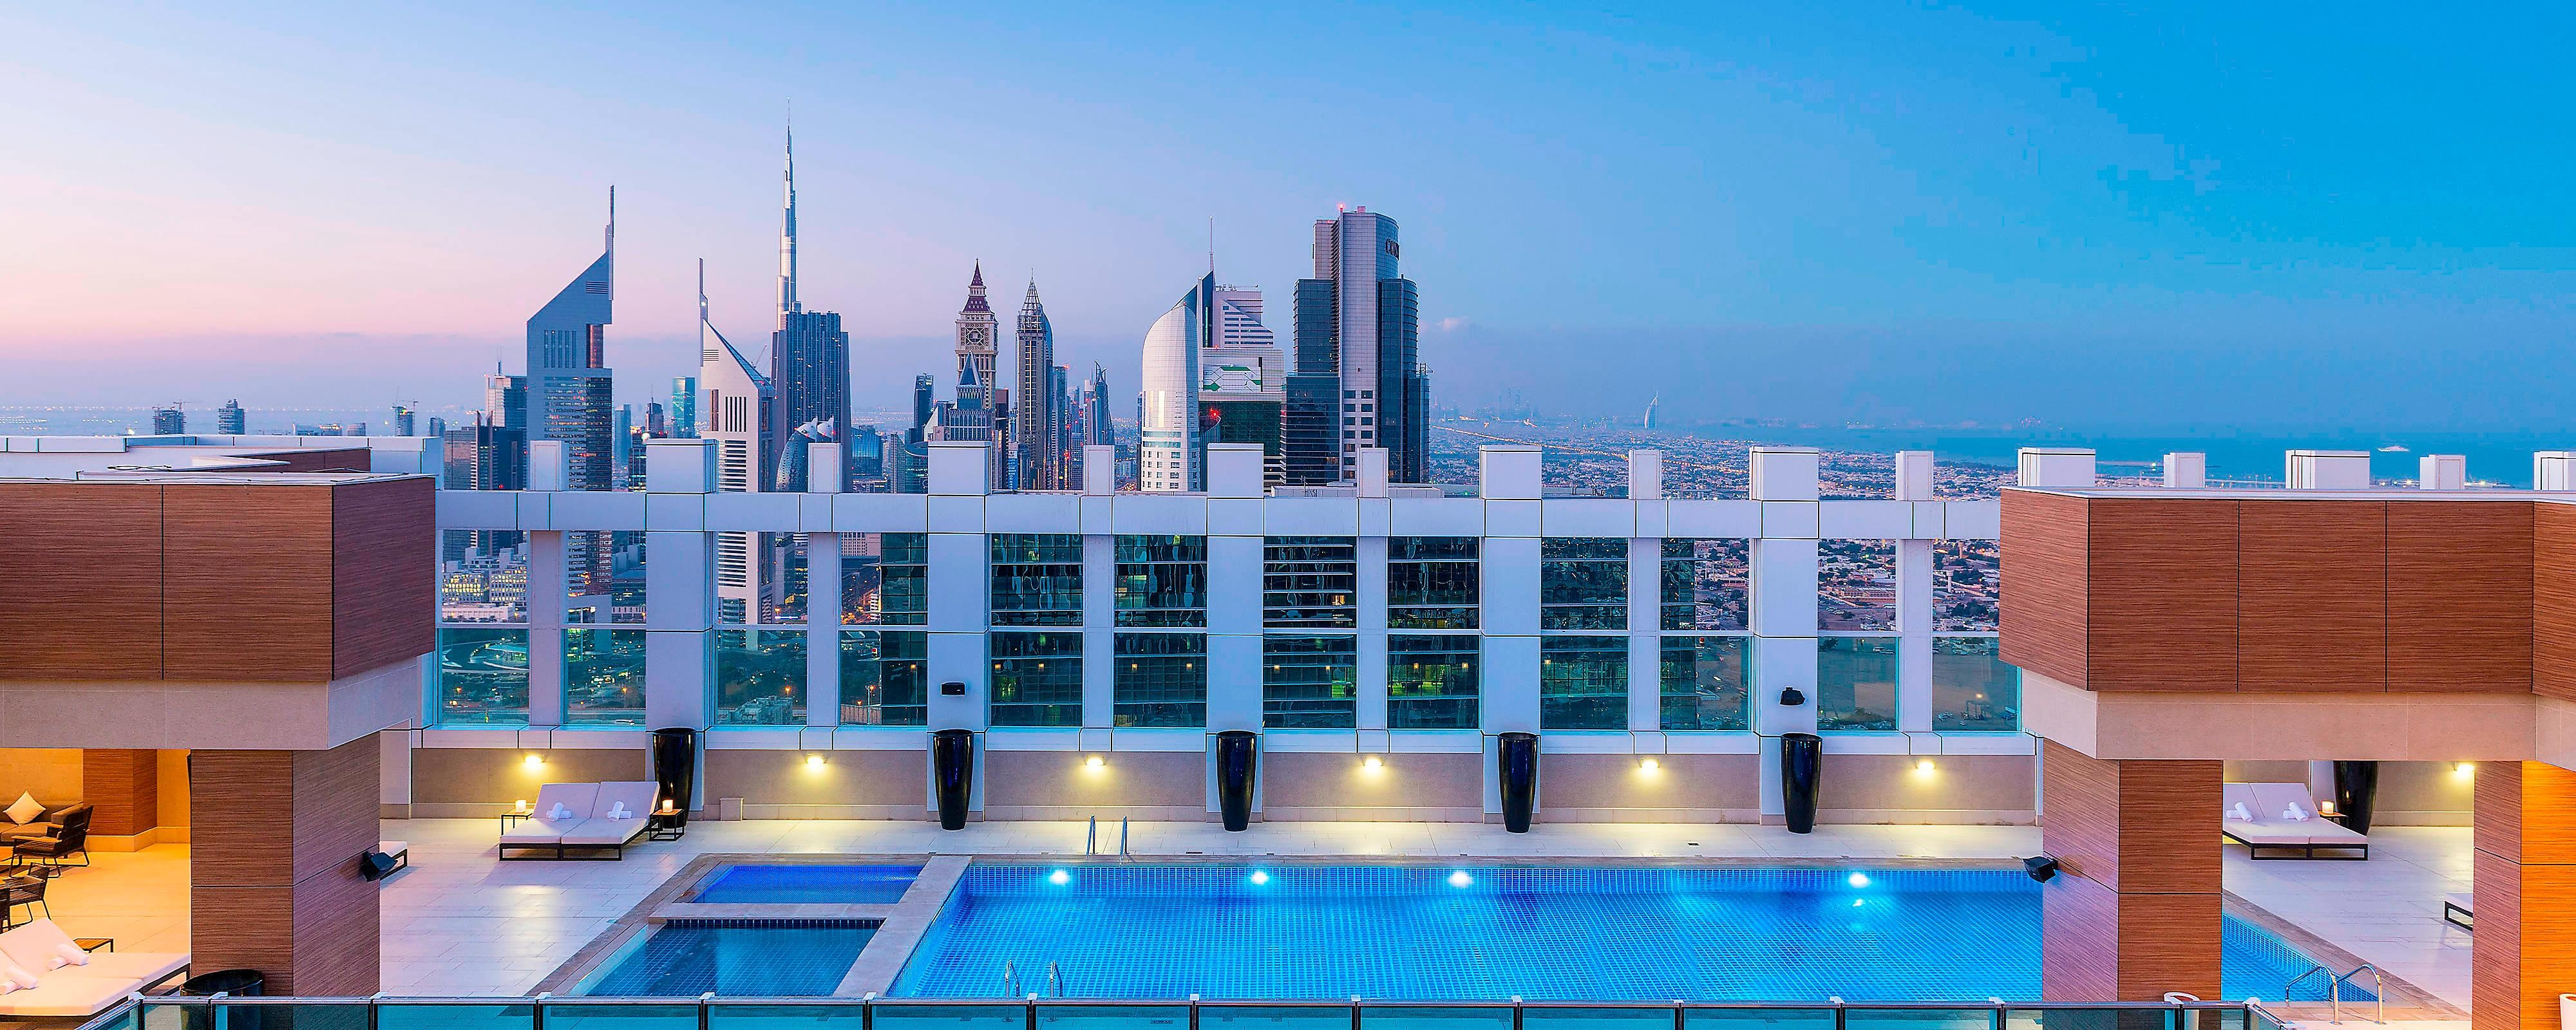 Make the most of the laid back Poolside vibe while enjoying fantastic Views of the city